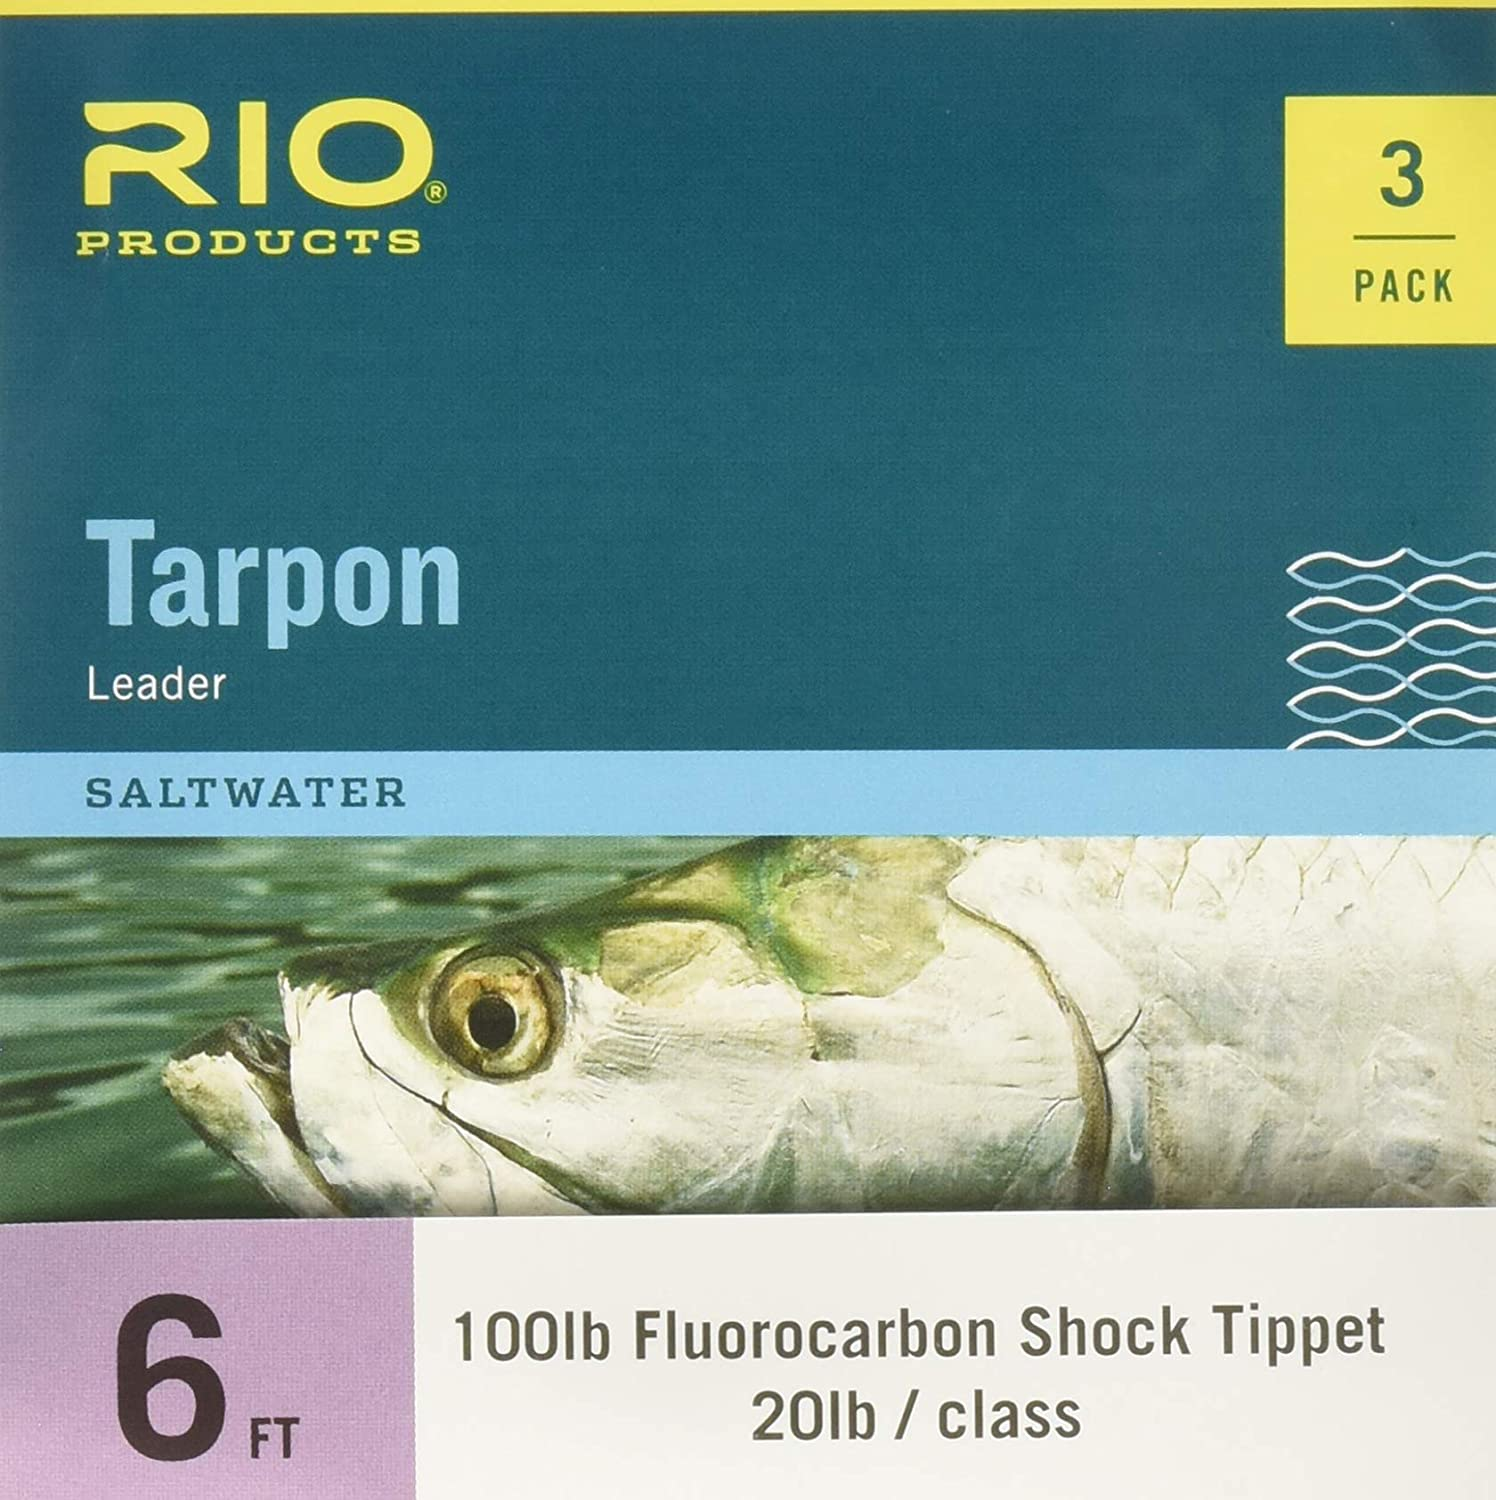 RIO Fly Fishing Tarpon 6 60Lb Fluorocarbon Shock 3 Pack Fishing Leaders, Clear